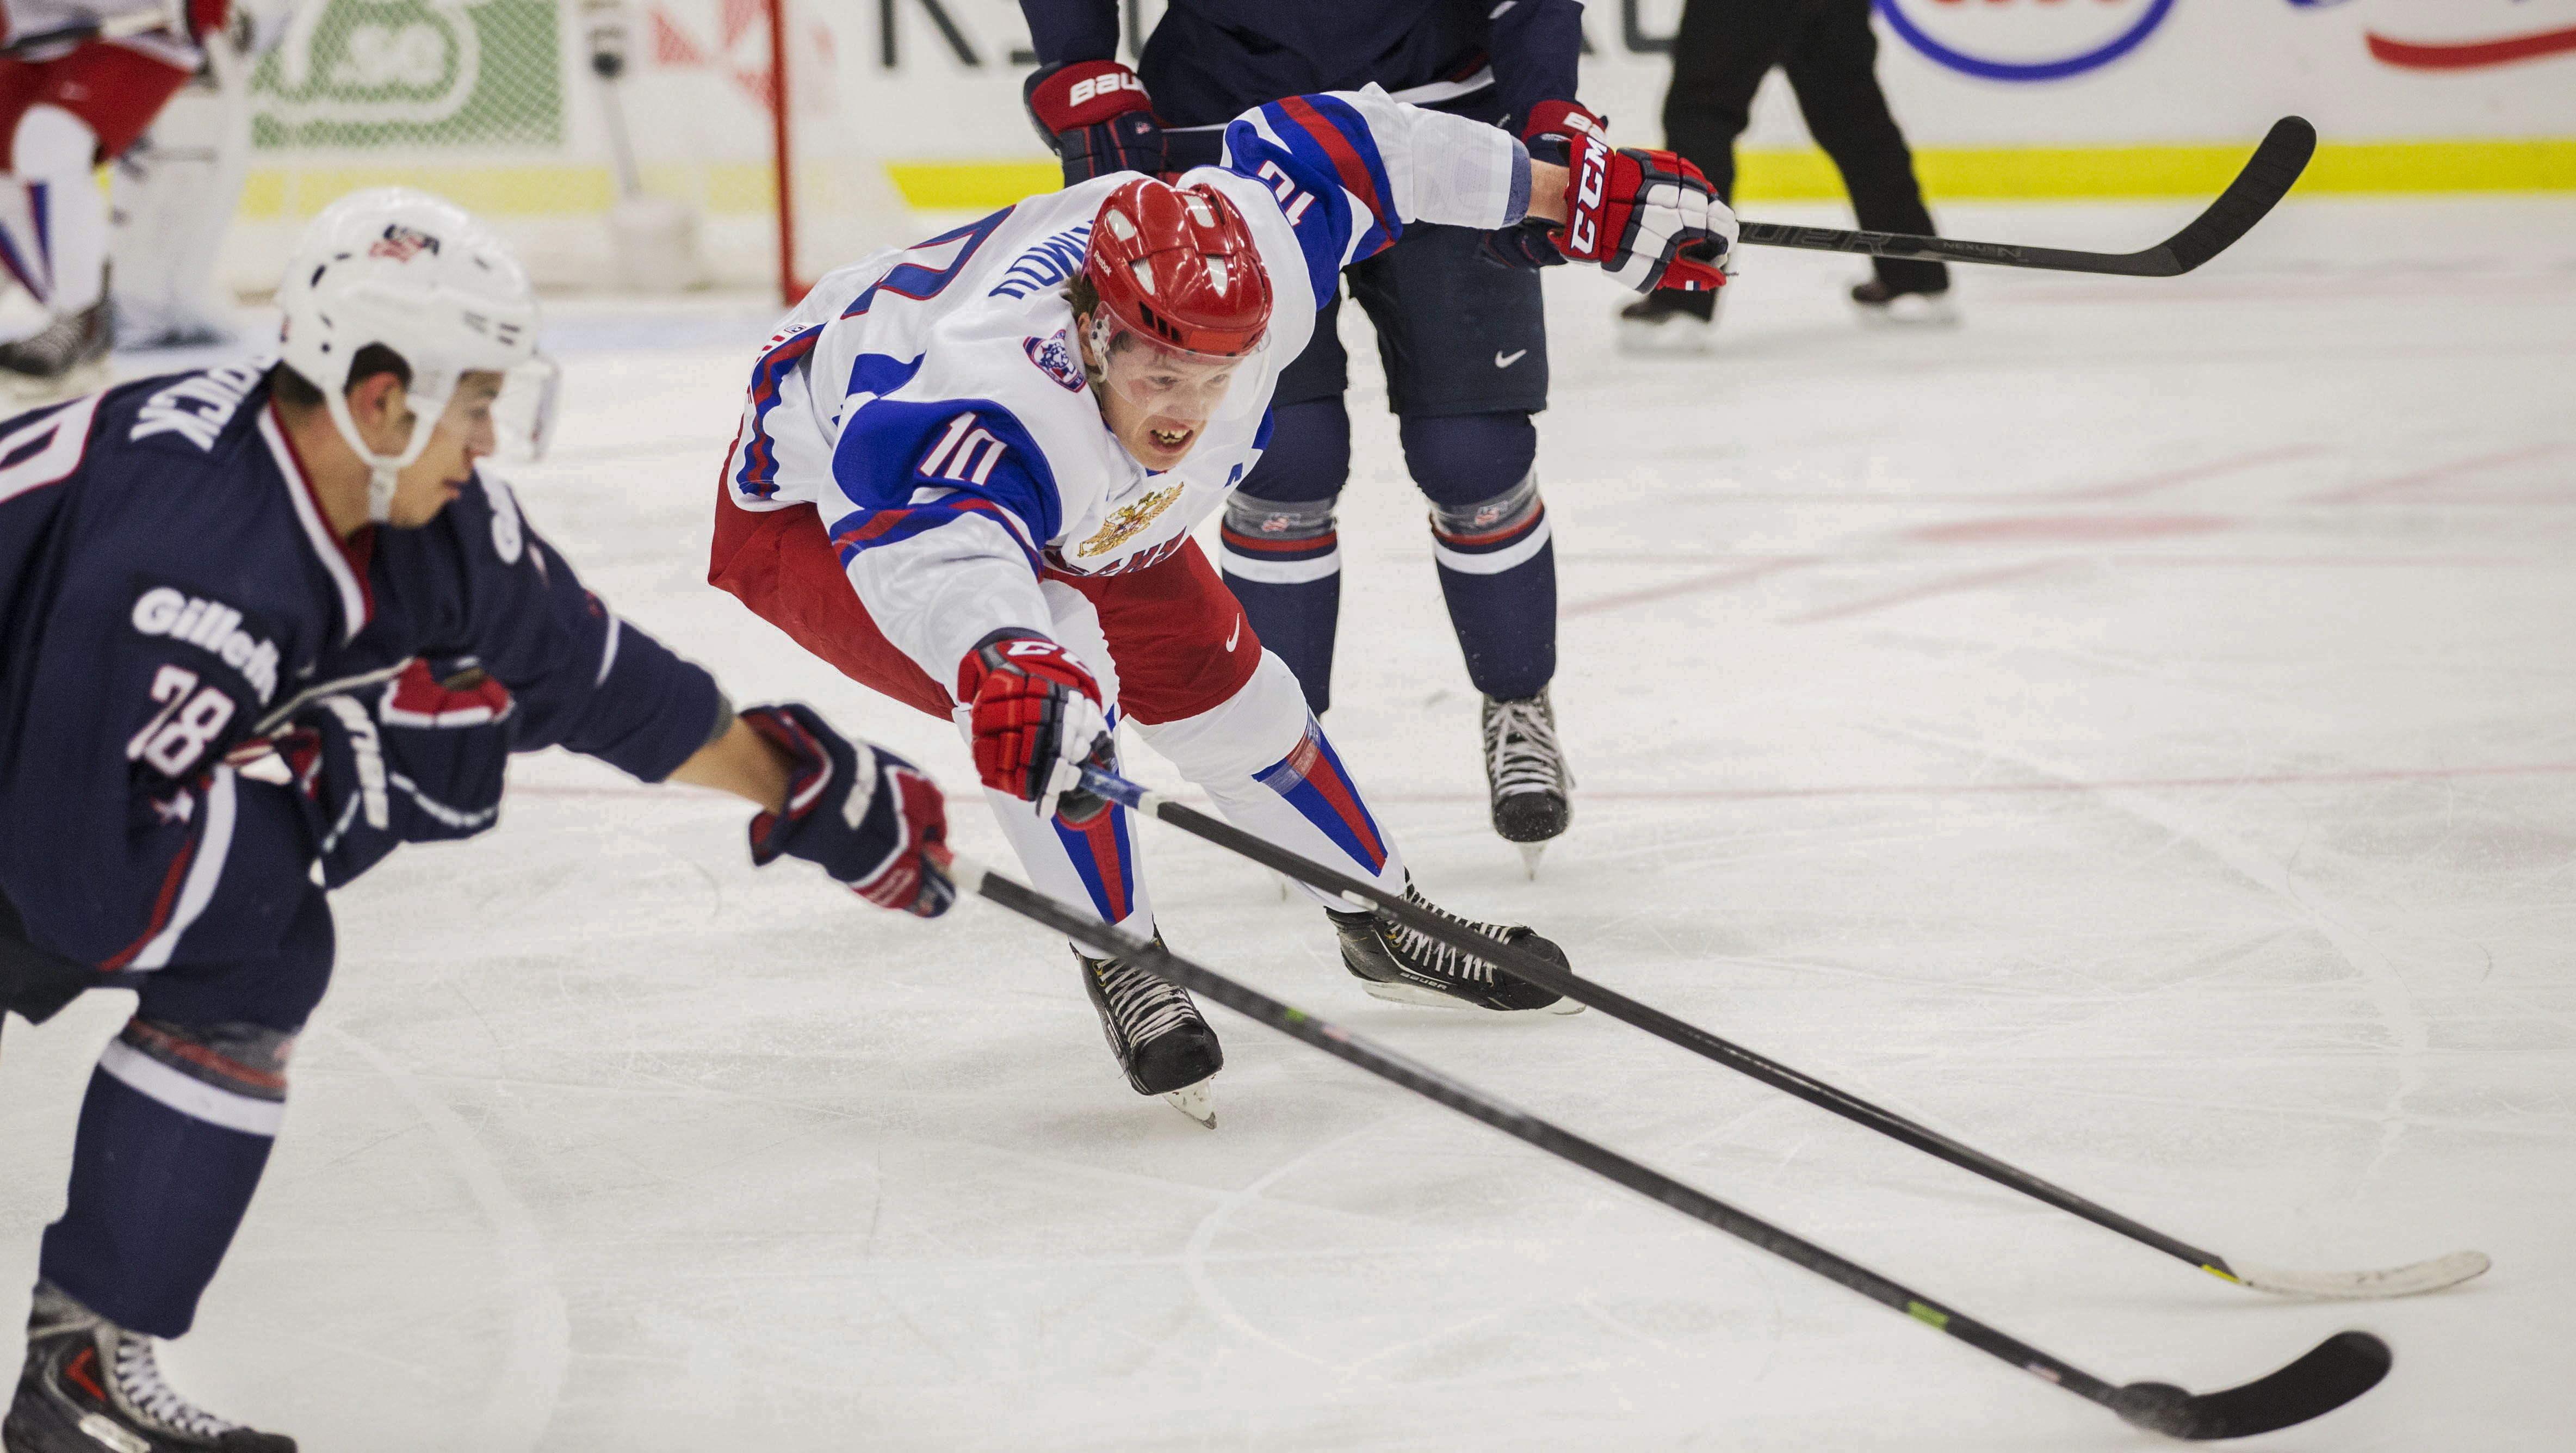 Russia's Bogdan Yakimov, center, fights for the puck with Connor Carrick of the USA during their World Junior Hockey Championships quarter final in Malmo, Sweden on Thursday, Jan. 2, 2014. (AP Photo/Andreas Hillergren) ** SWEDEN OUT **